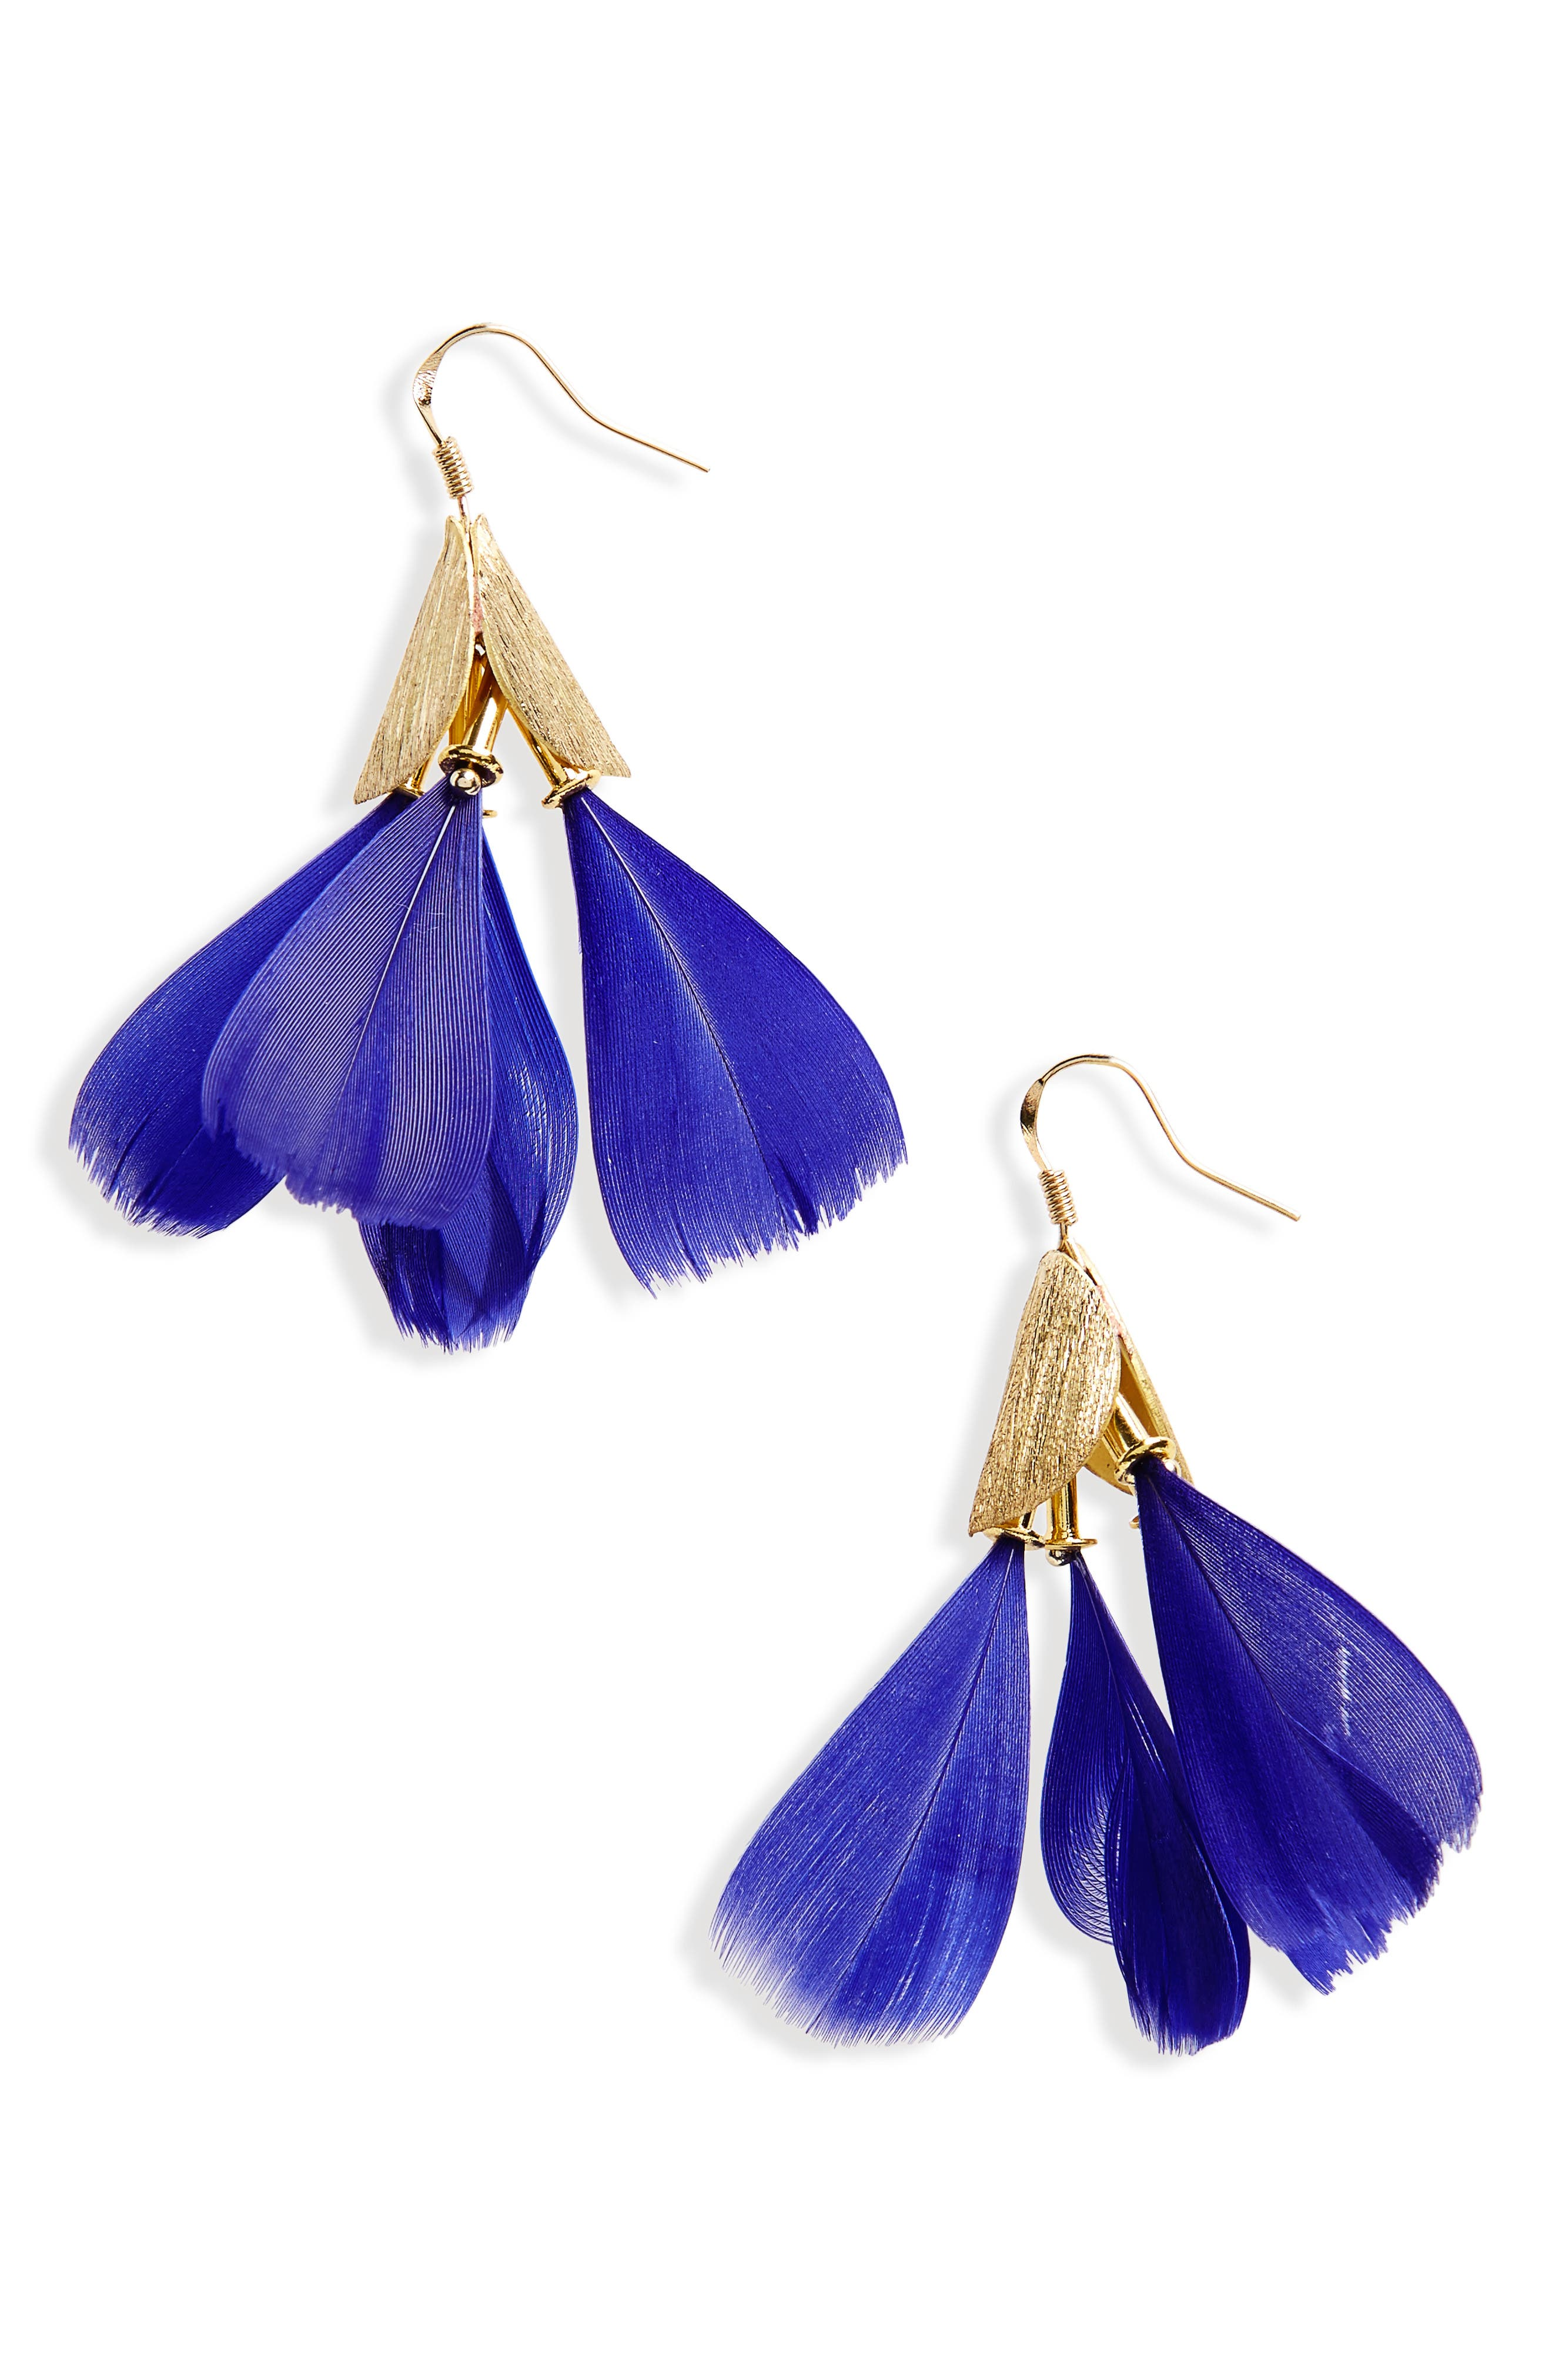 Dancing Feather Earrings,                         Main,                         color, Blue